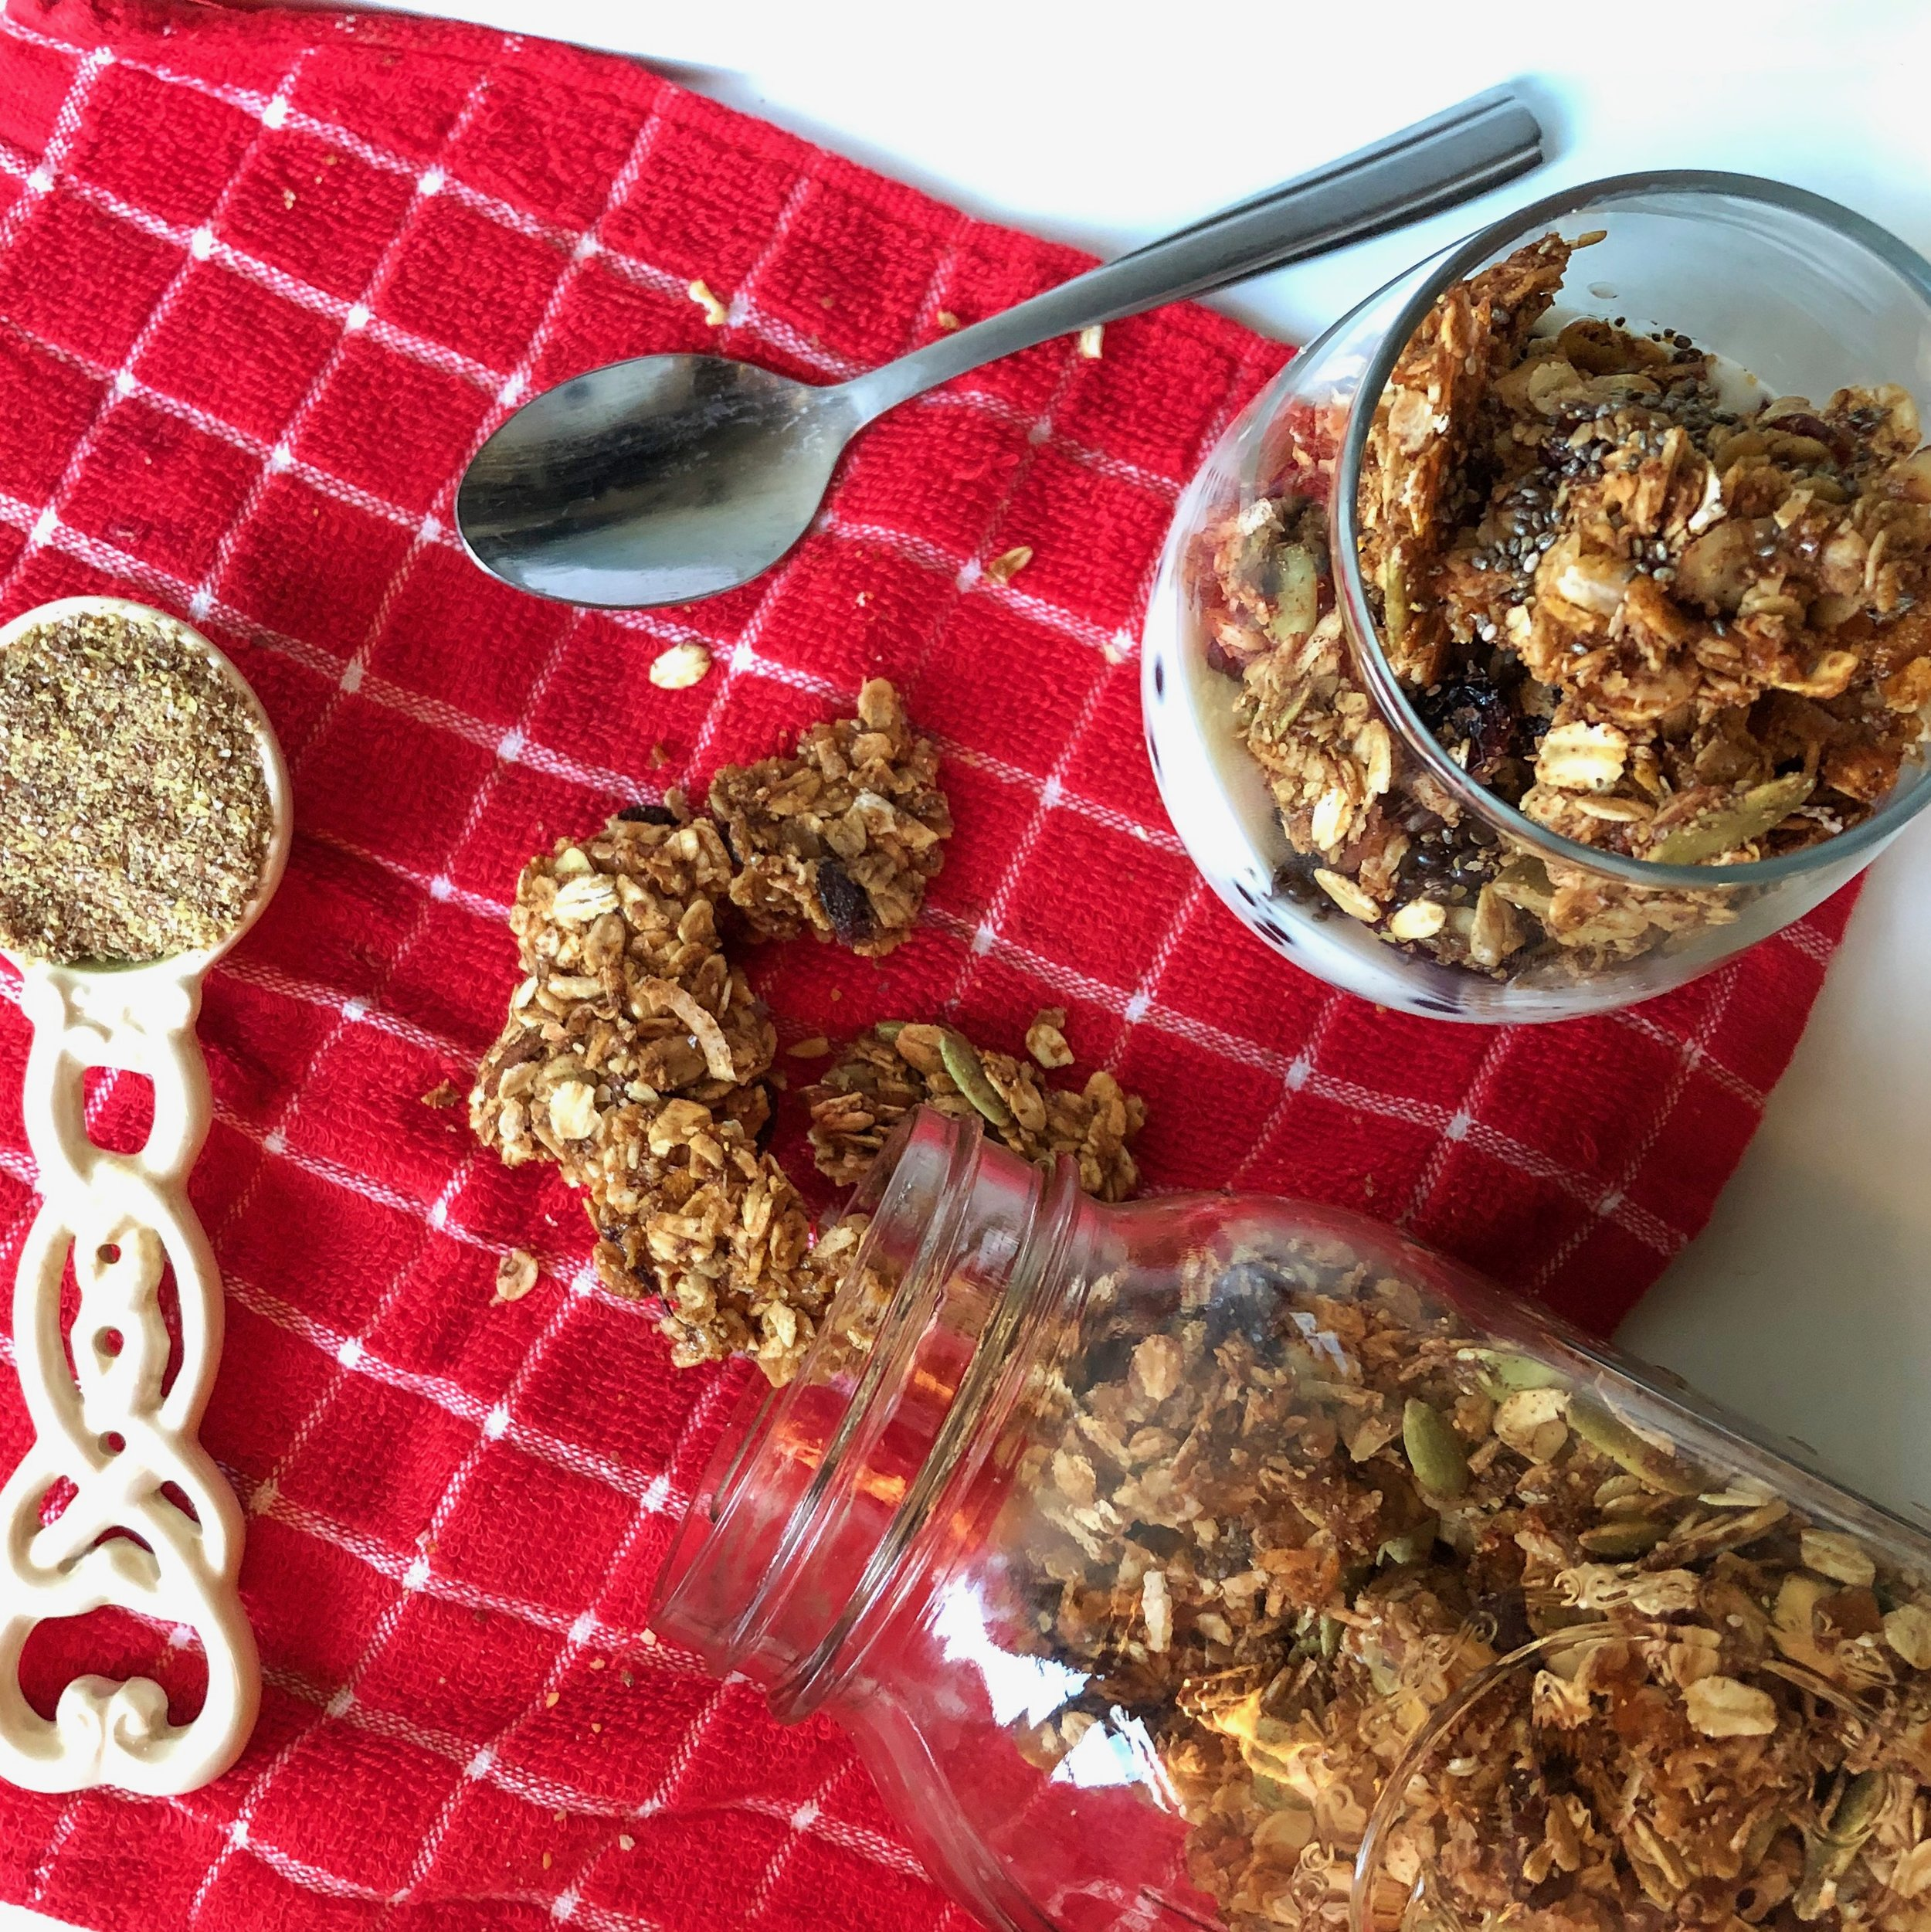 HONEY FLAX GRANOLA CLUSTERS - DAIRY-FREE, NO ADDED SUGAR, GLUTEN-FREE (OPTIONAL), VEGAN (OPTIONAL)